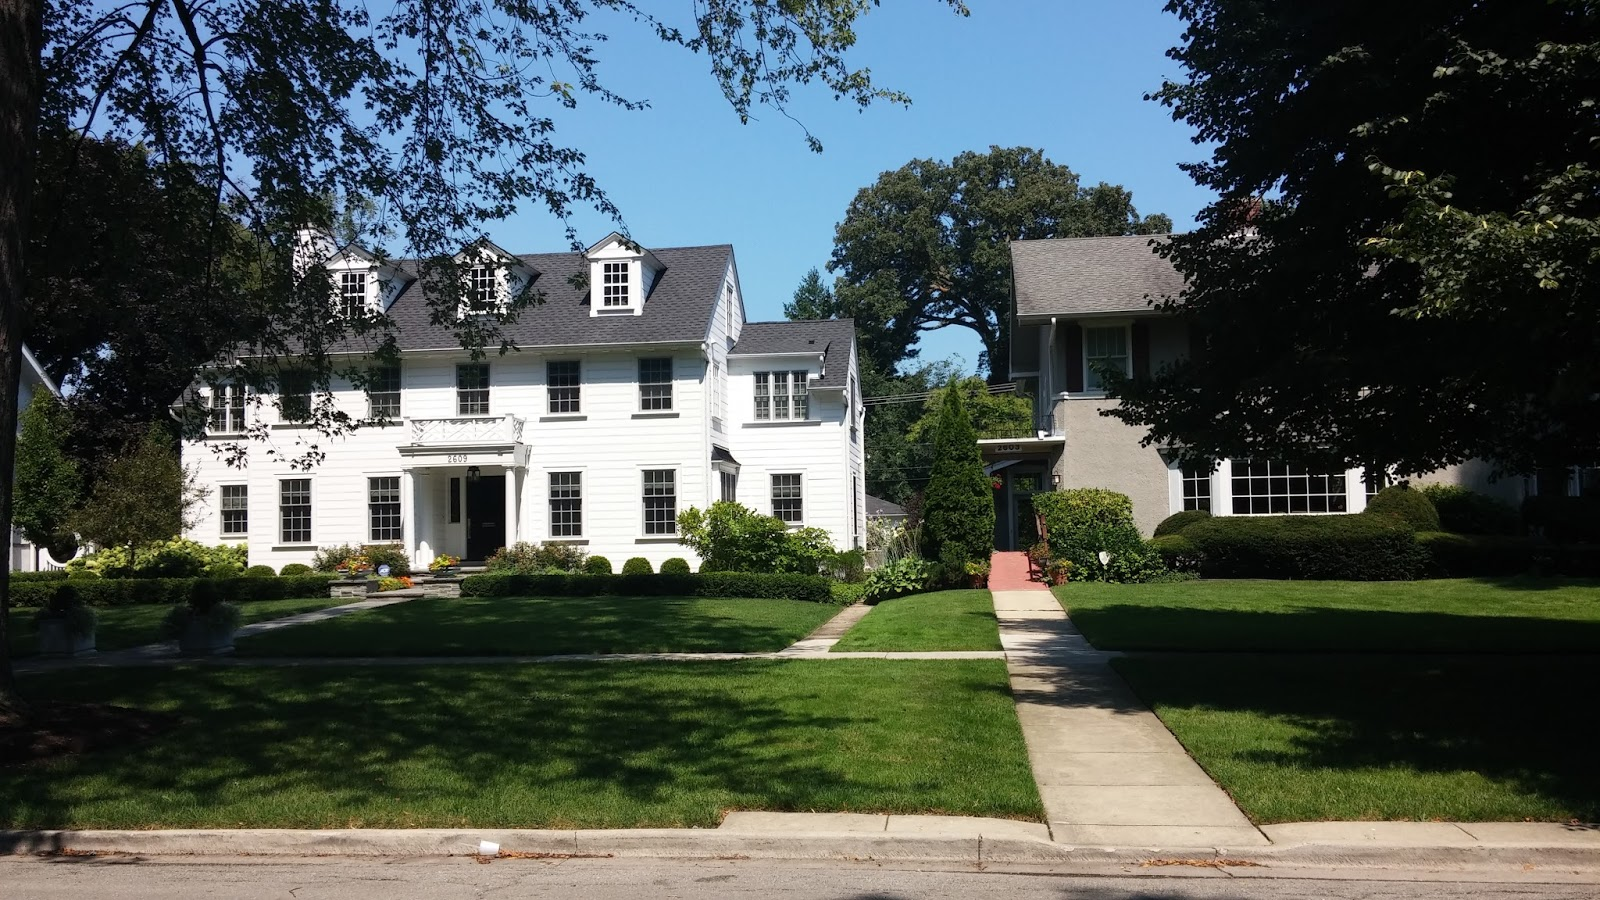 Rehab addict 1904 mansion -  Up To The Wrong House And Wakes Up All Of The Neighbors Above Is A Still From The Film Below Is 2015 You Can Find It At 2609 Lincoln Street In